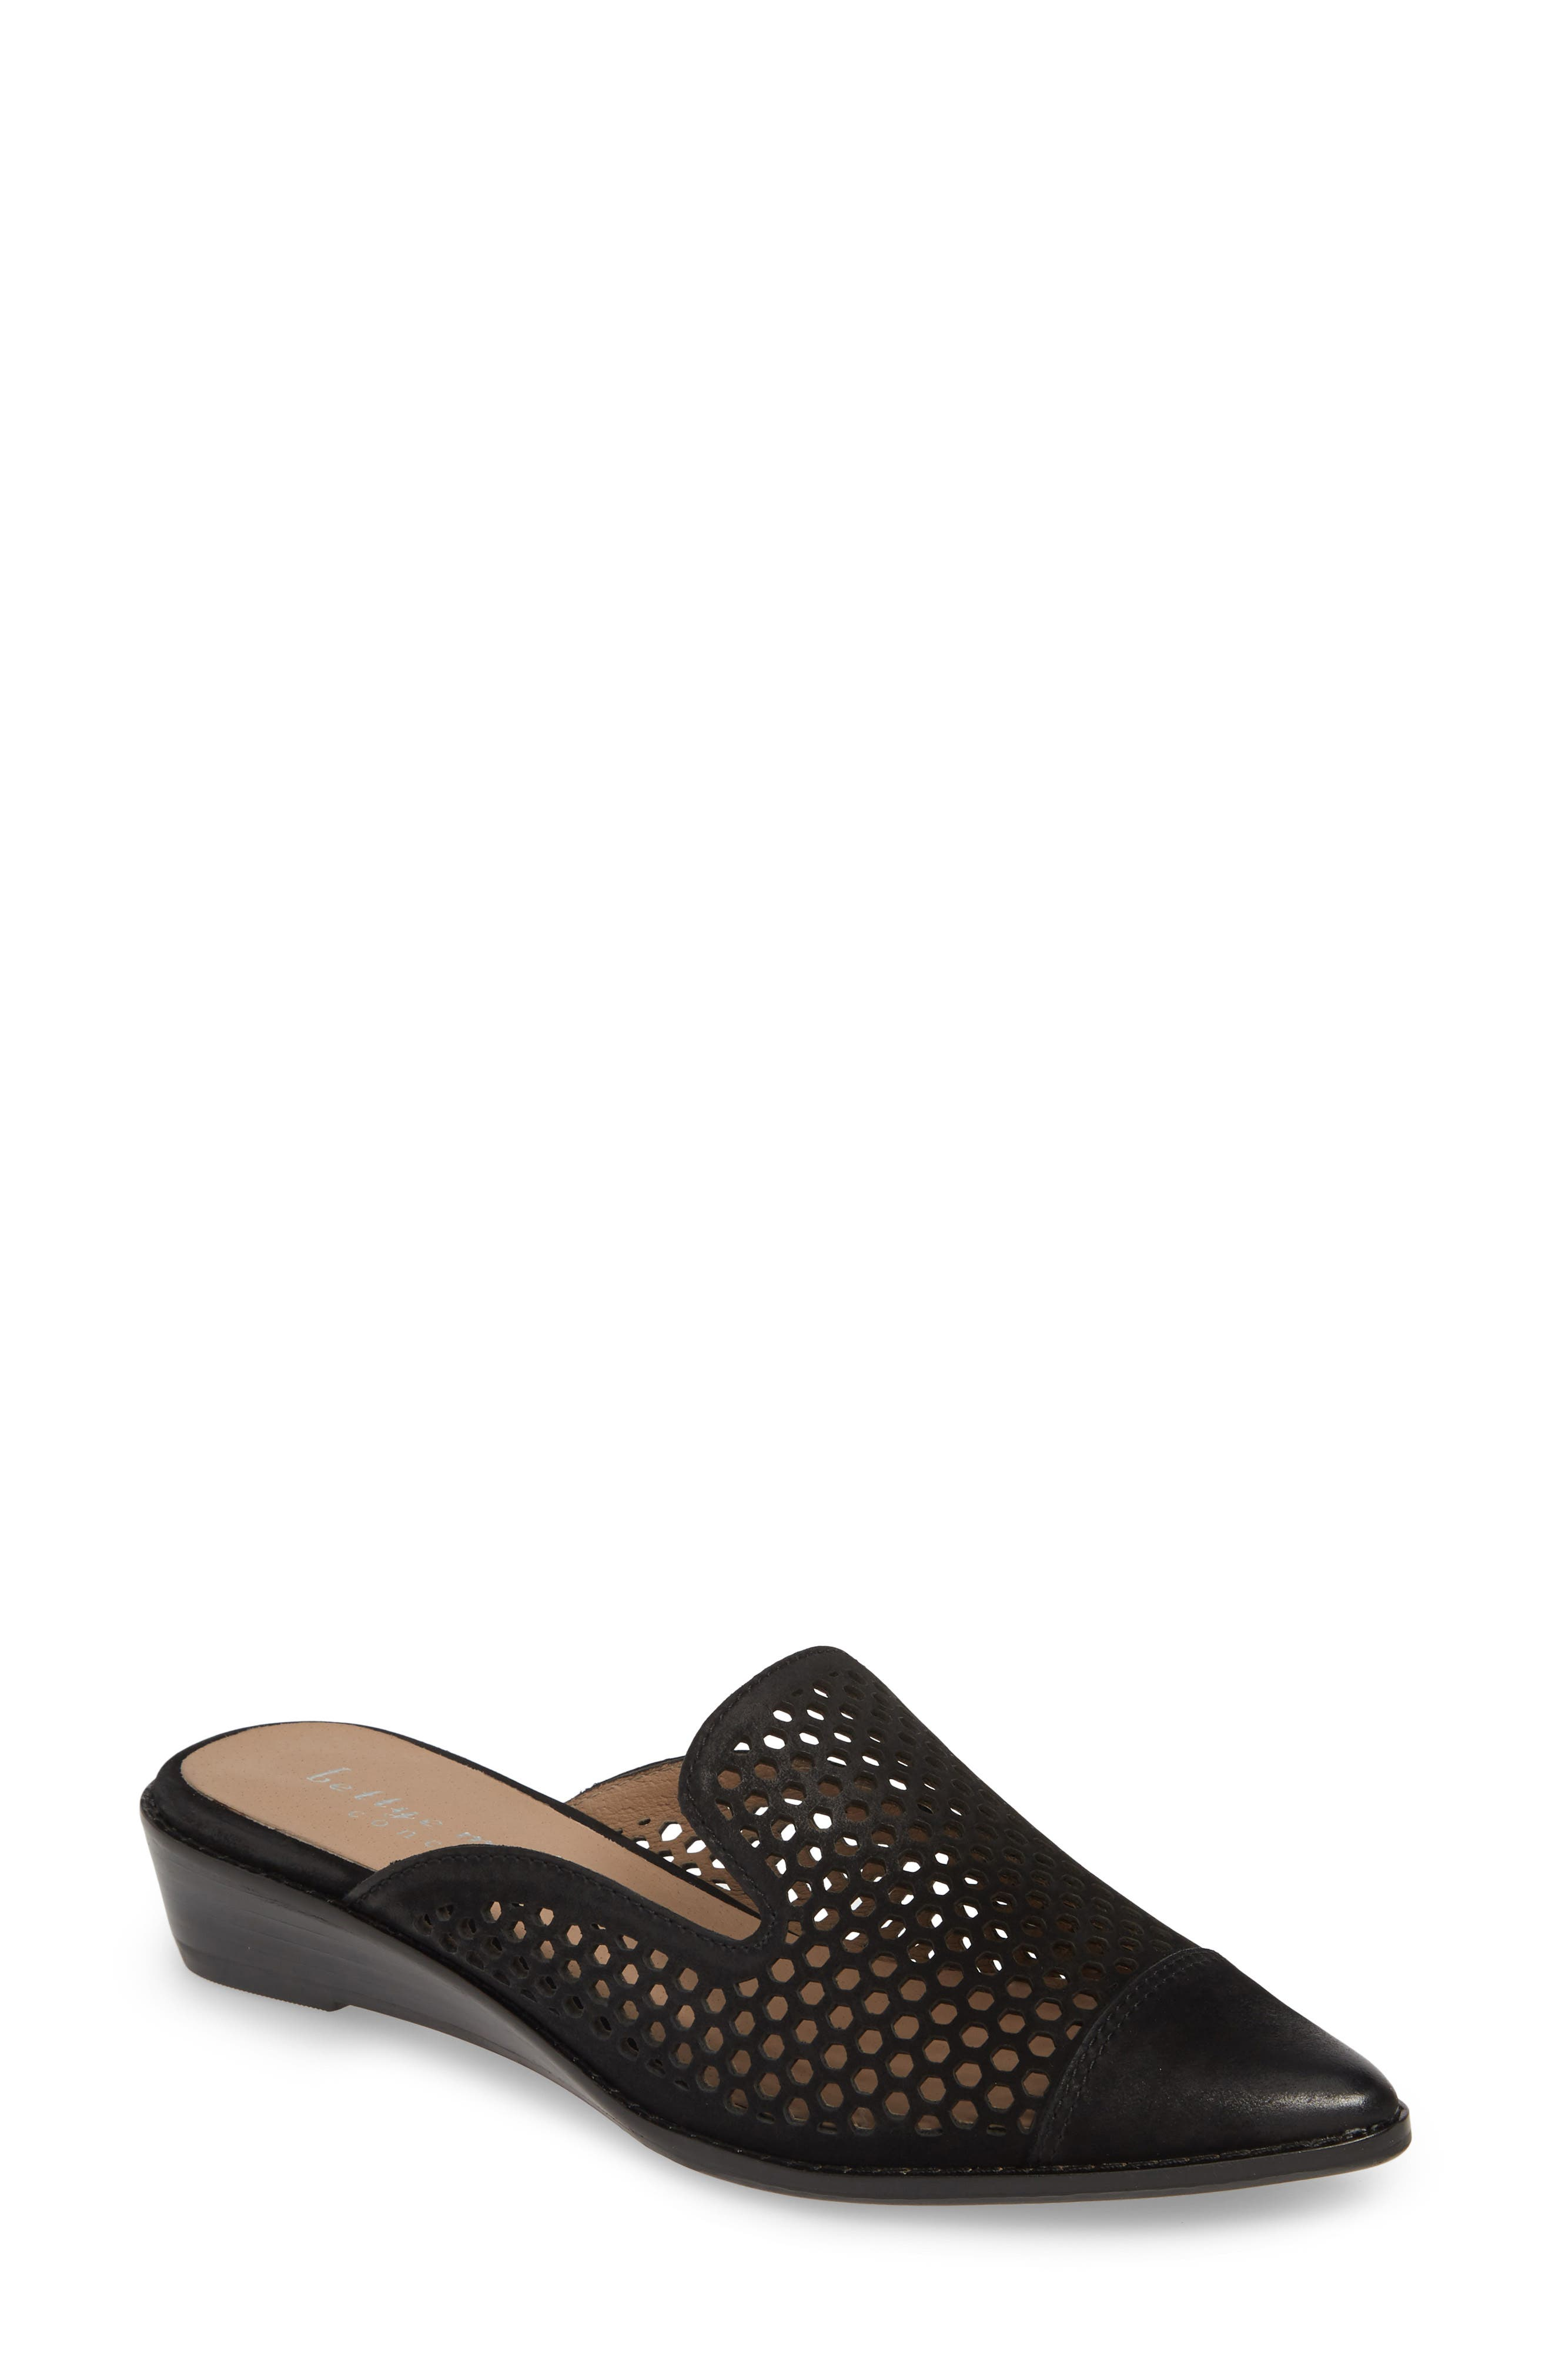 Image of BETTYE MULLER CONCEPTS Cara Leather Perforated Mule